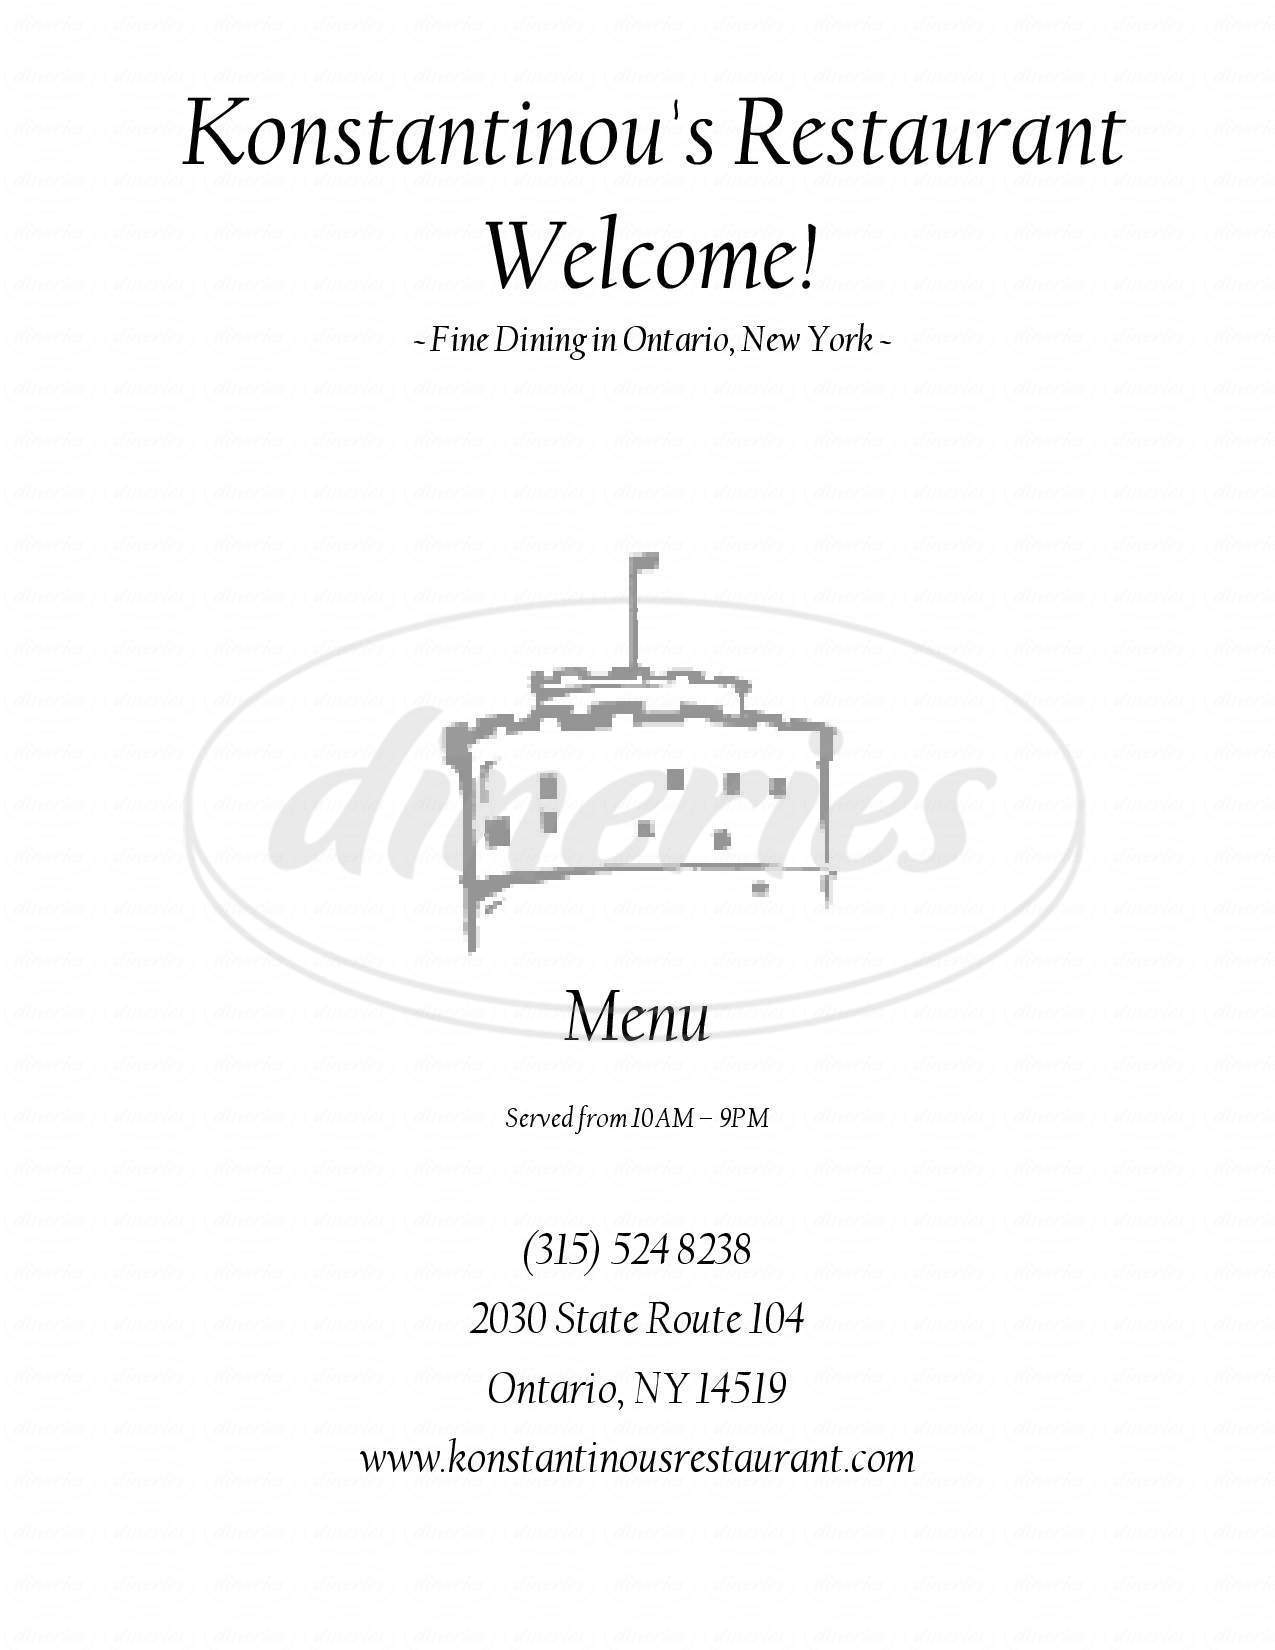 menu for Konstantinou's Restaurant